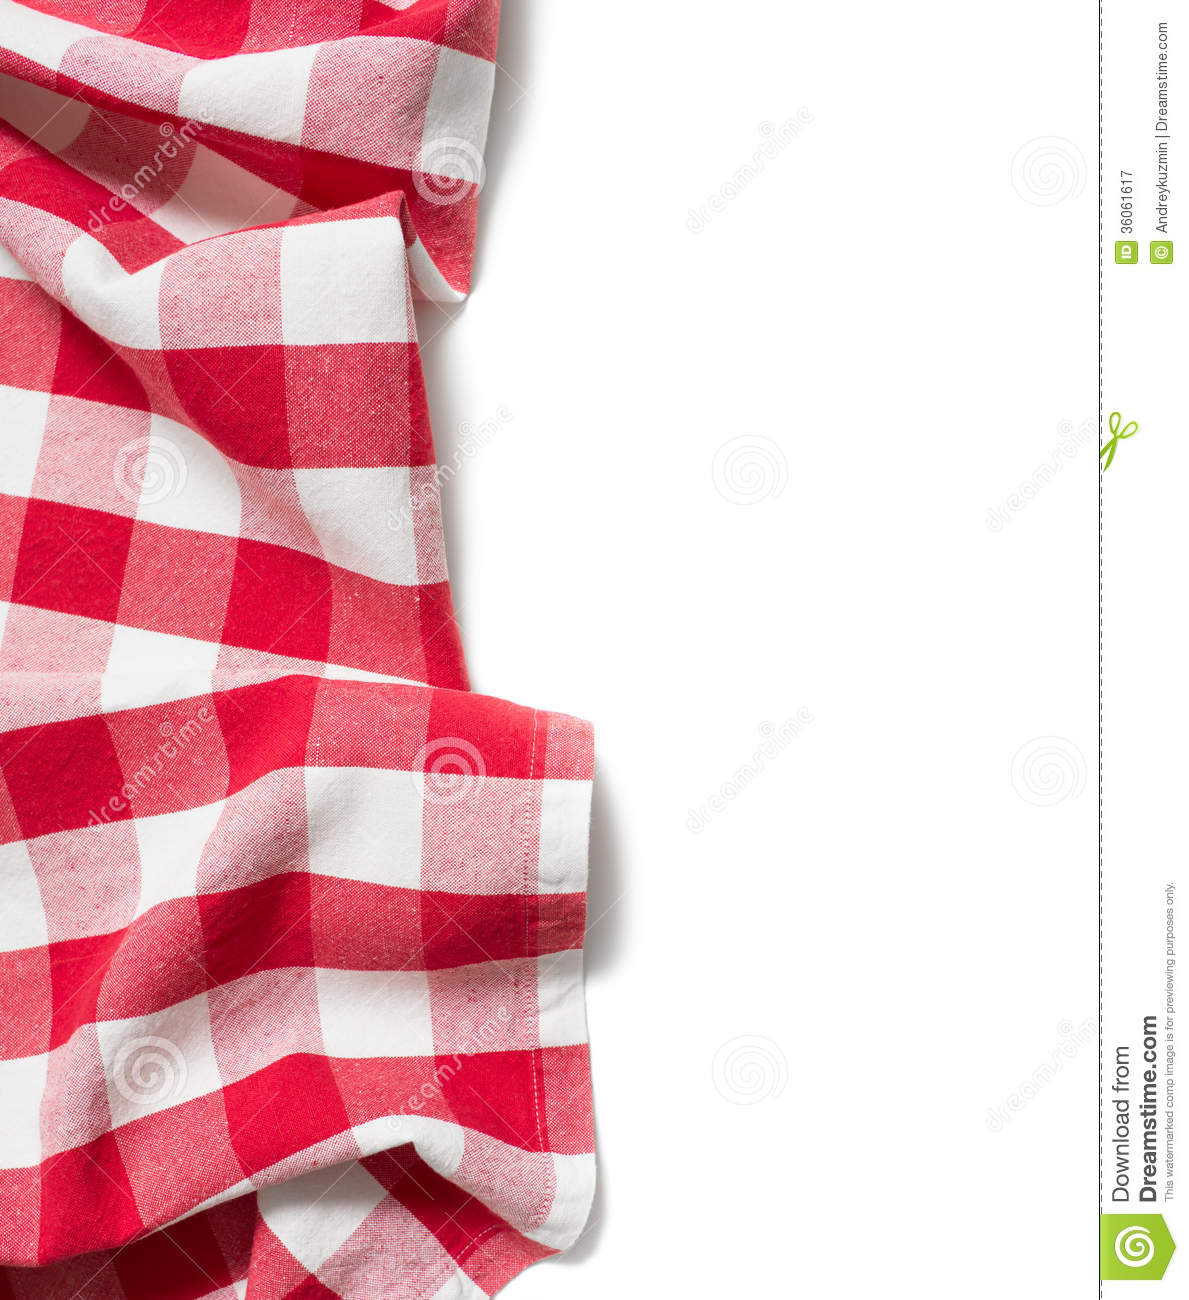 Red Folded Tablecloth Isolated Royalty Free Stock Photography - Image ...